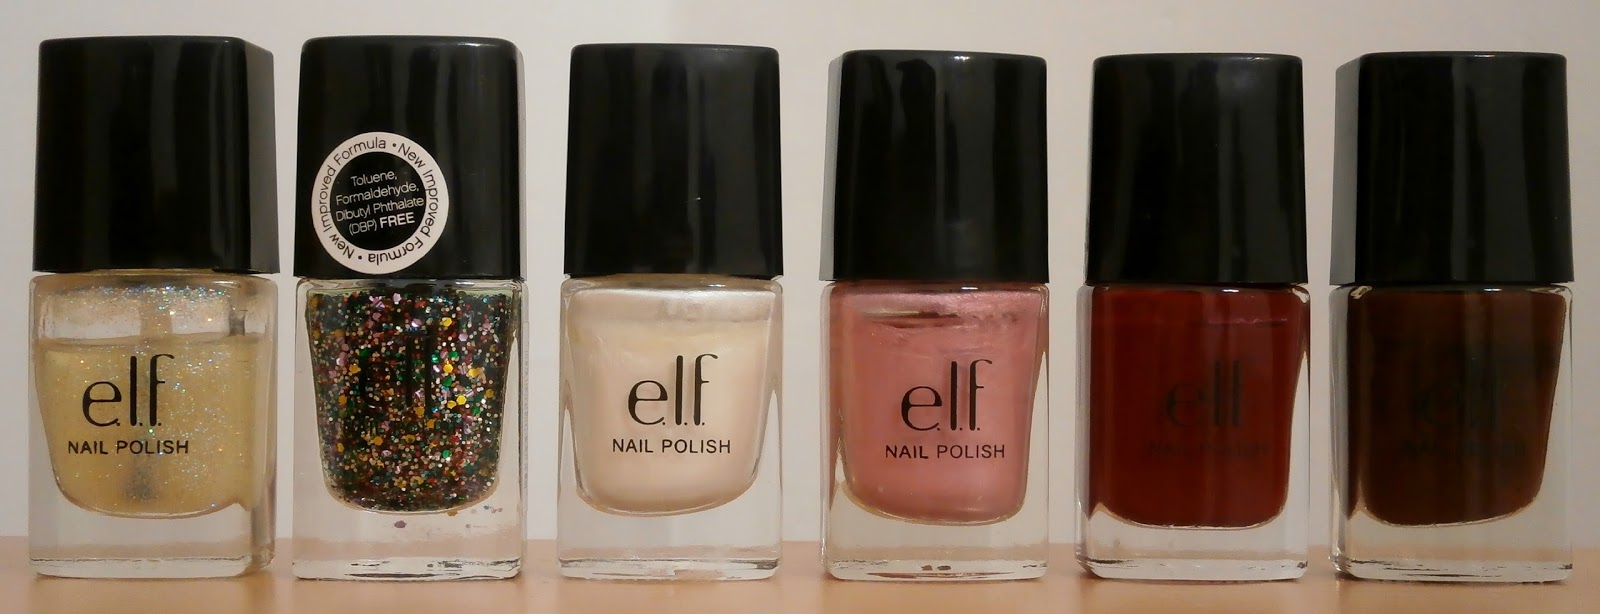 Nail Polish Collection | E.L.F. Cosmetics - Every Beauty Addict\'s Bible